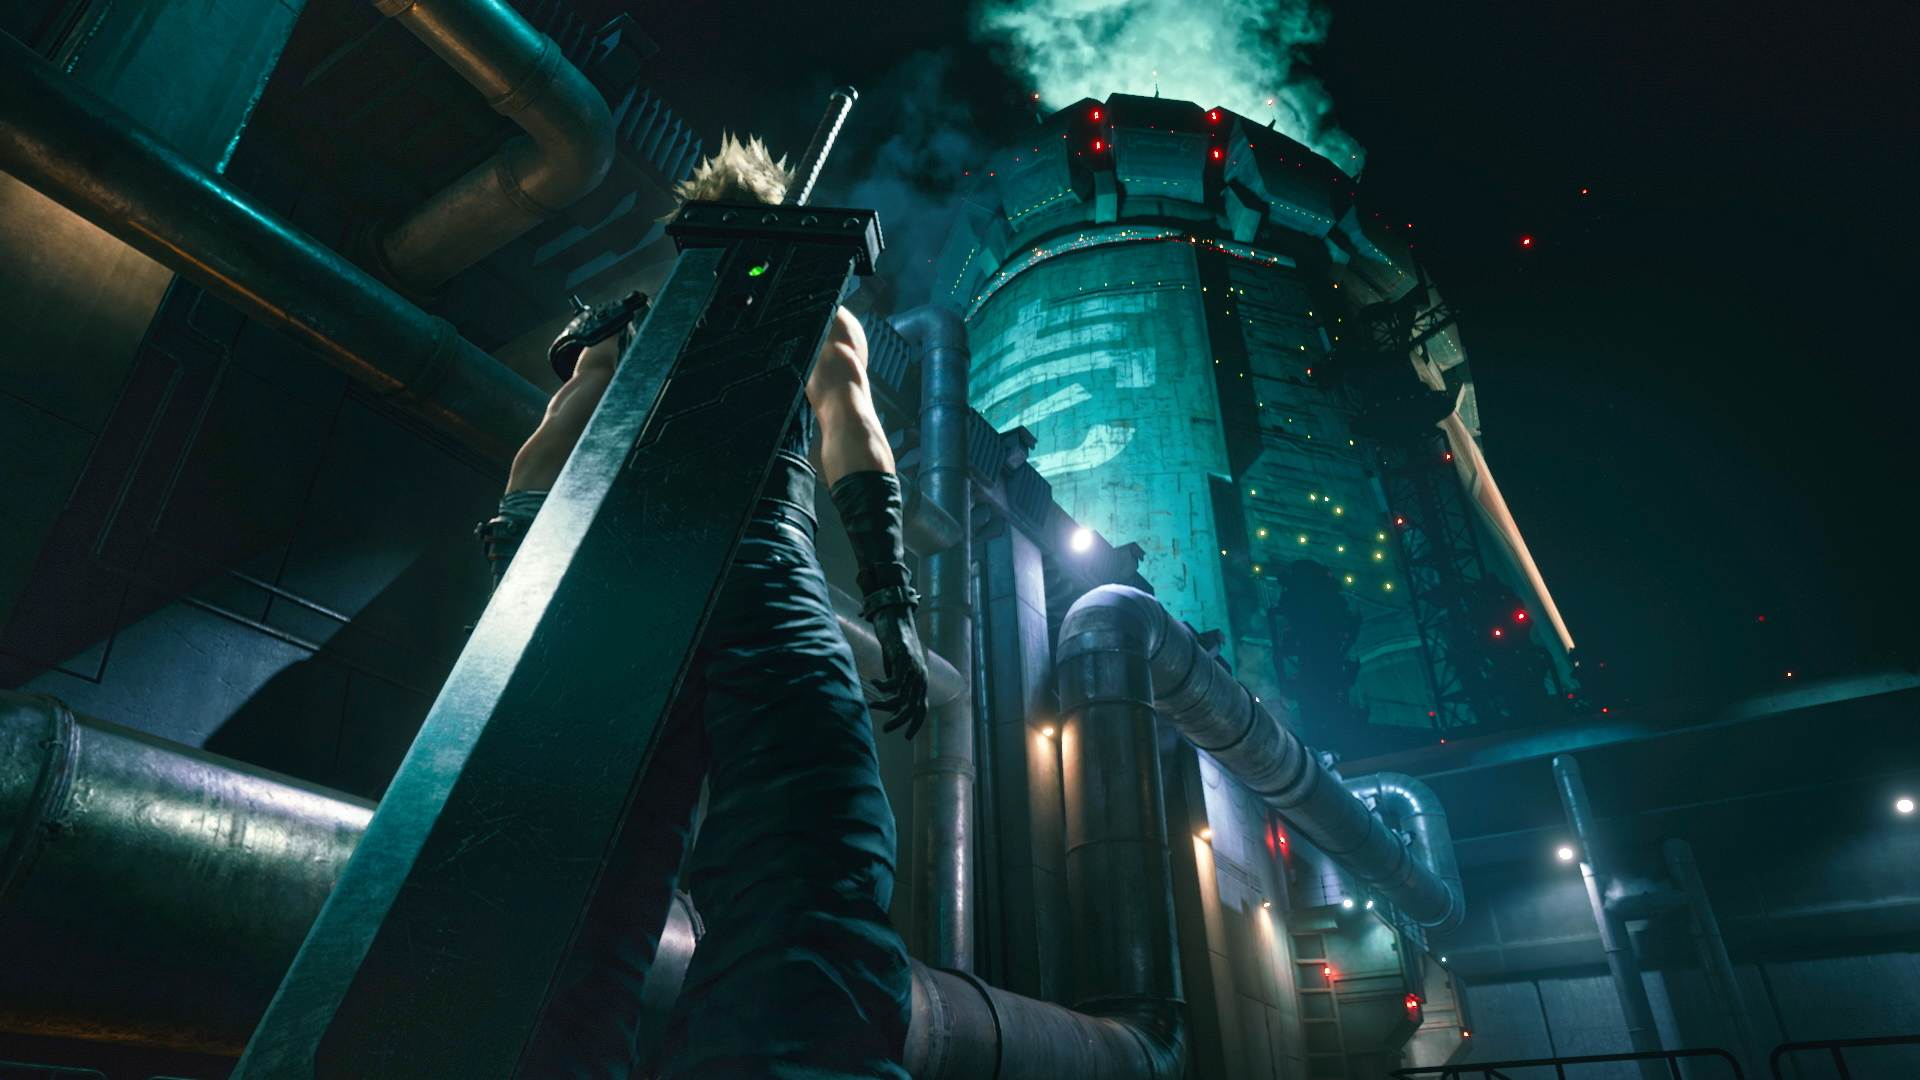 Final-Fantasy-VII-Remake-Bild-6